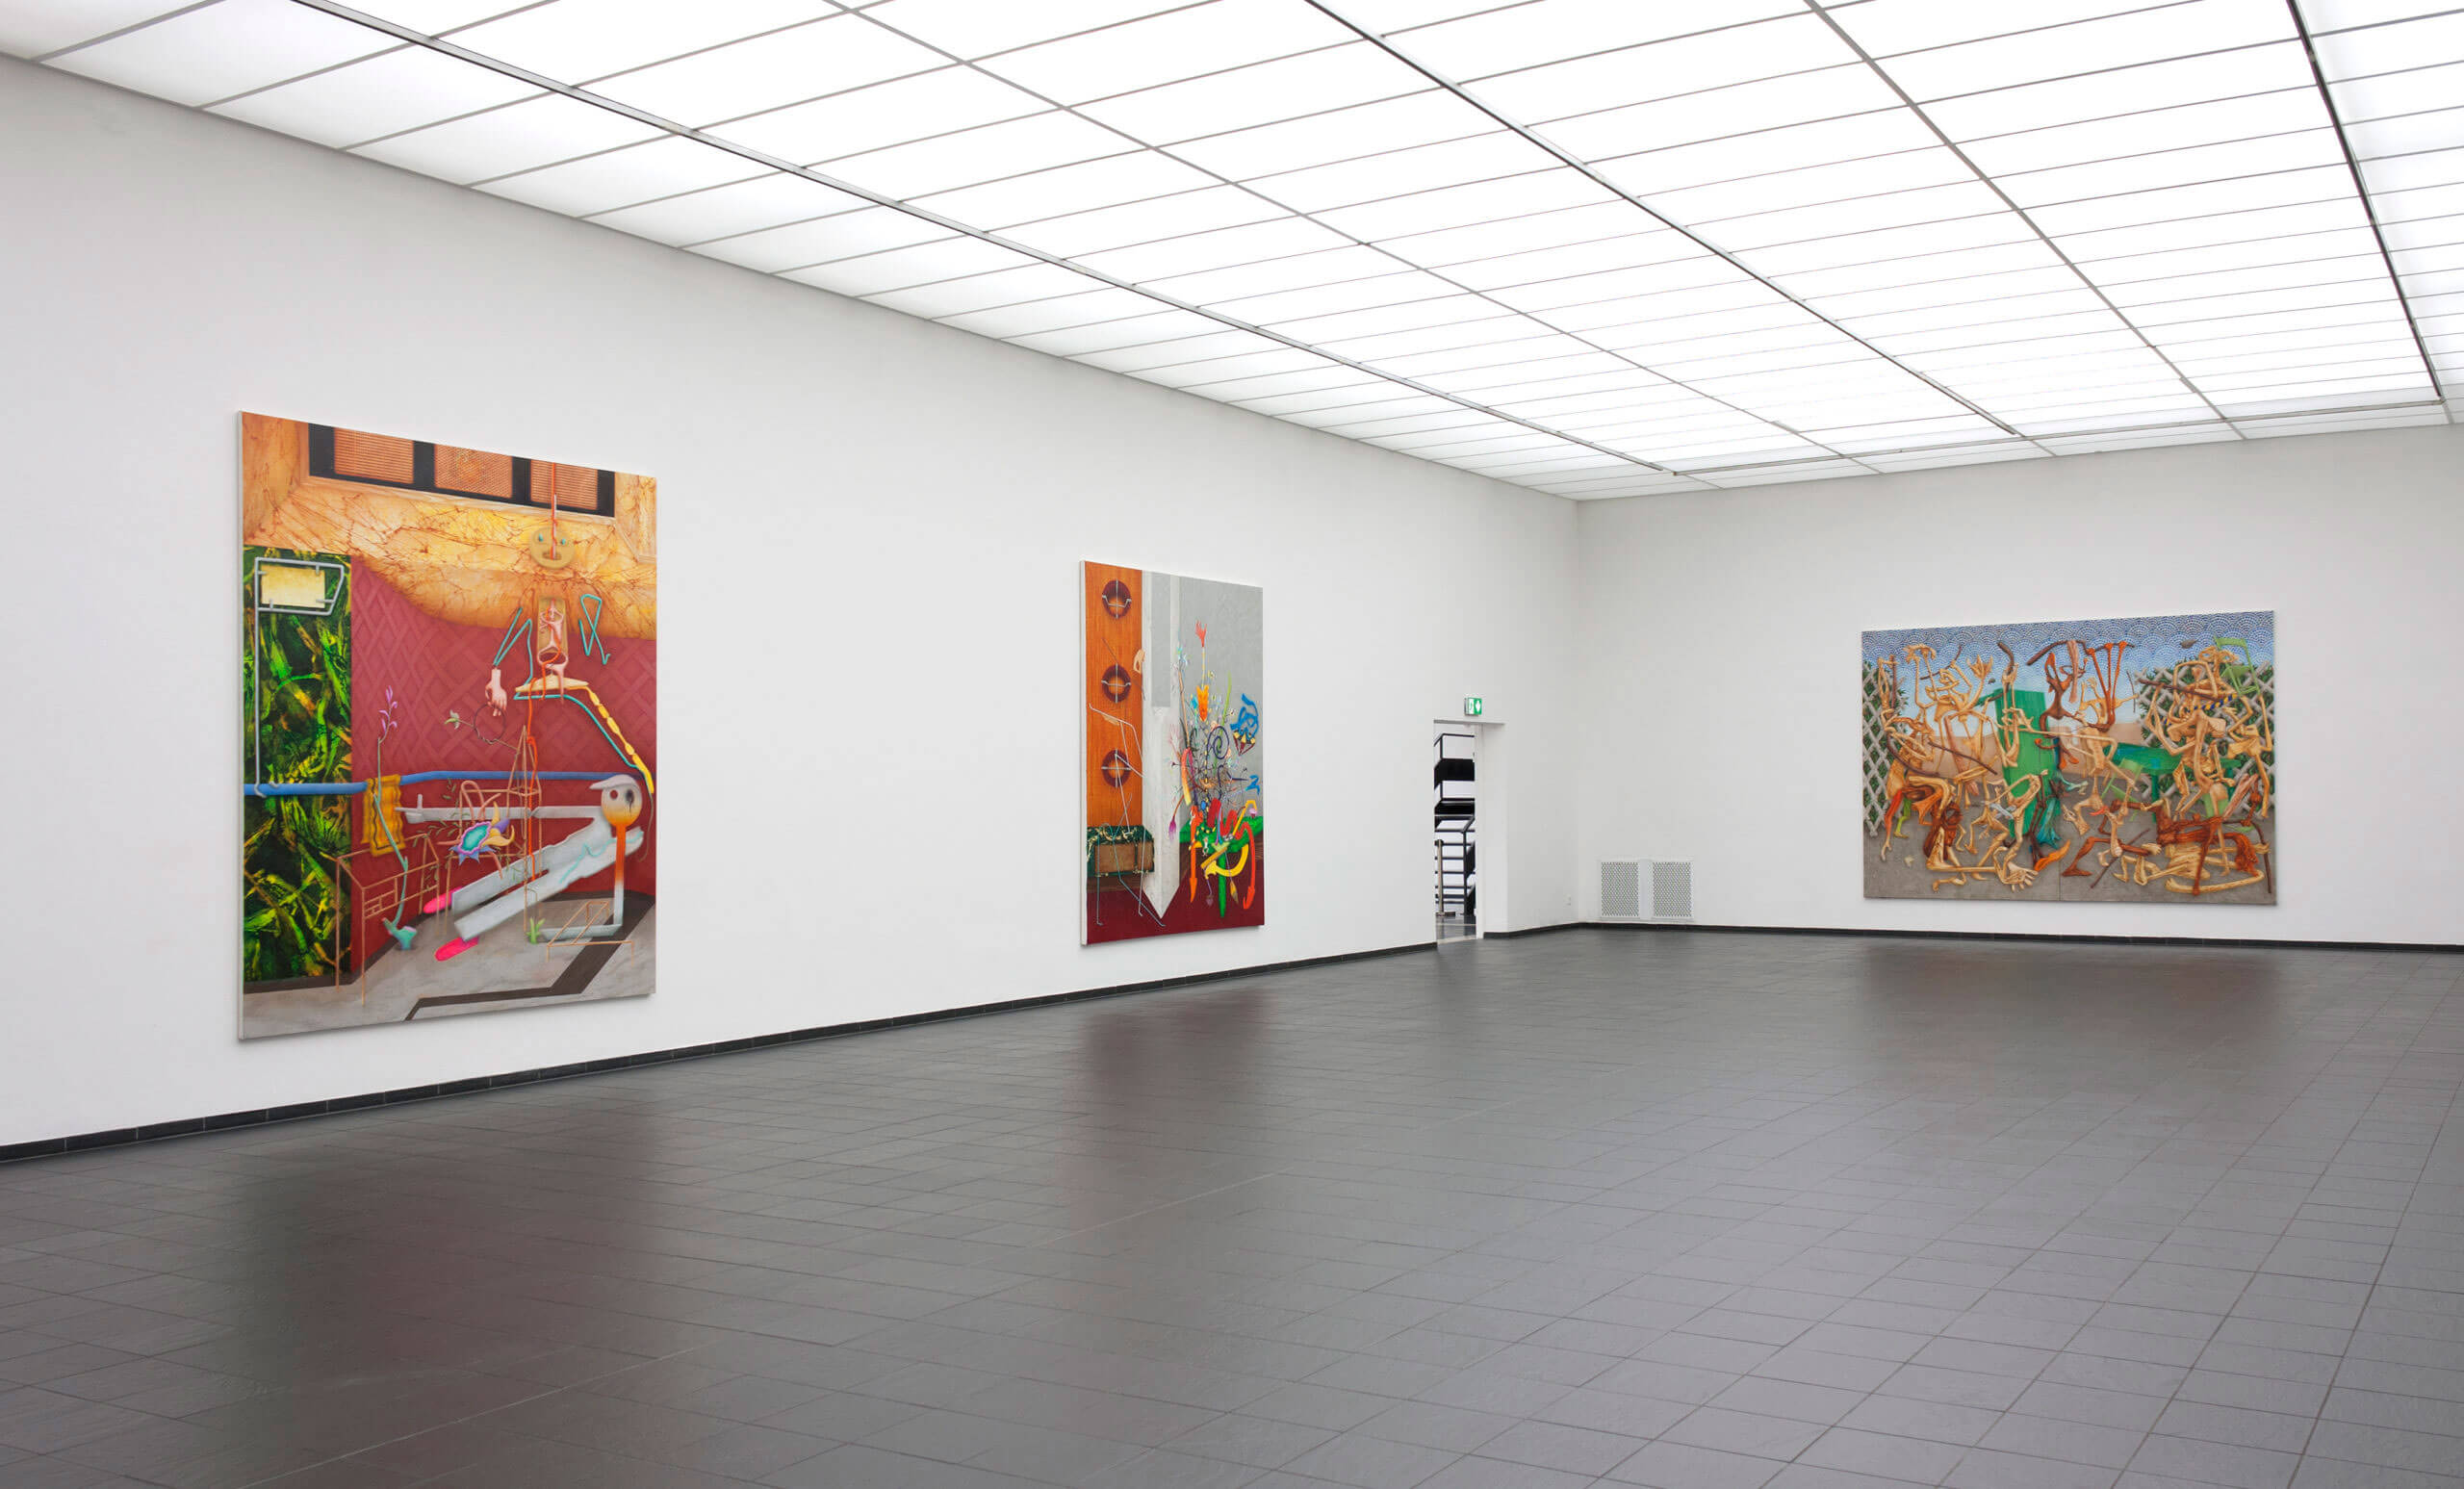 Installation view »He She It« at Kunsthalle Darmstadt